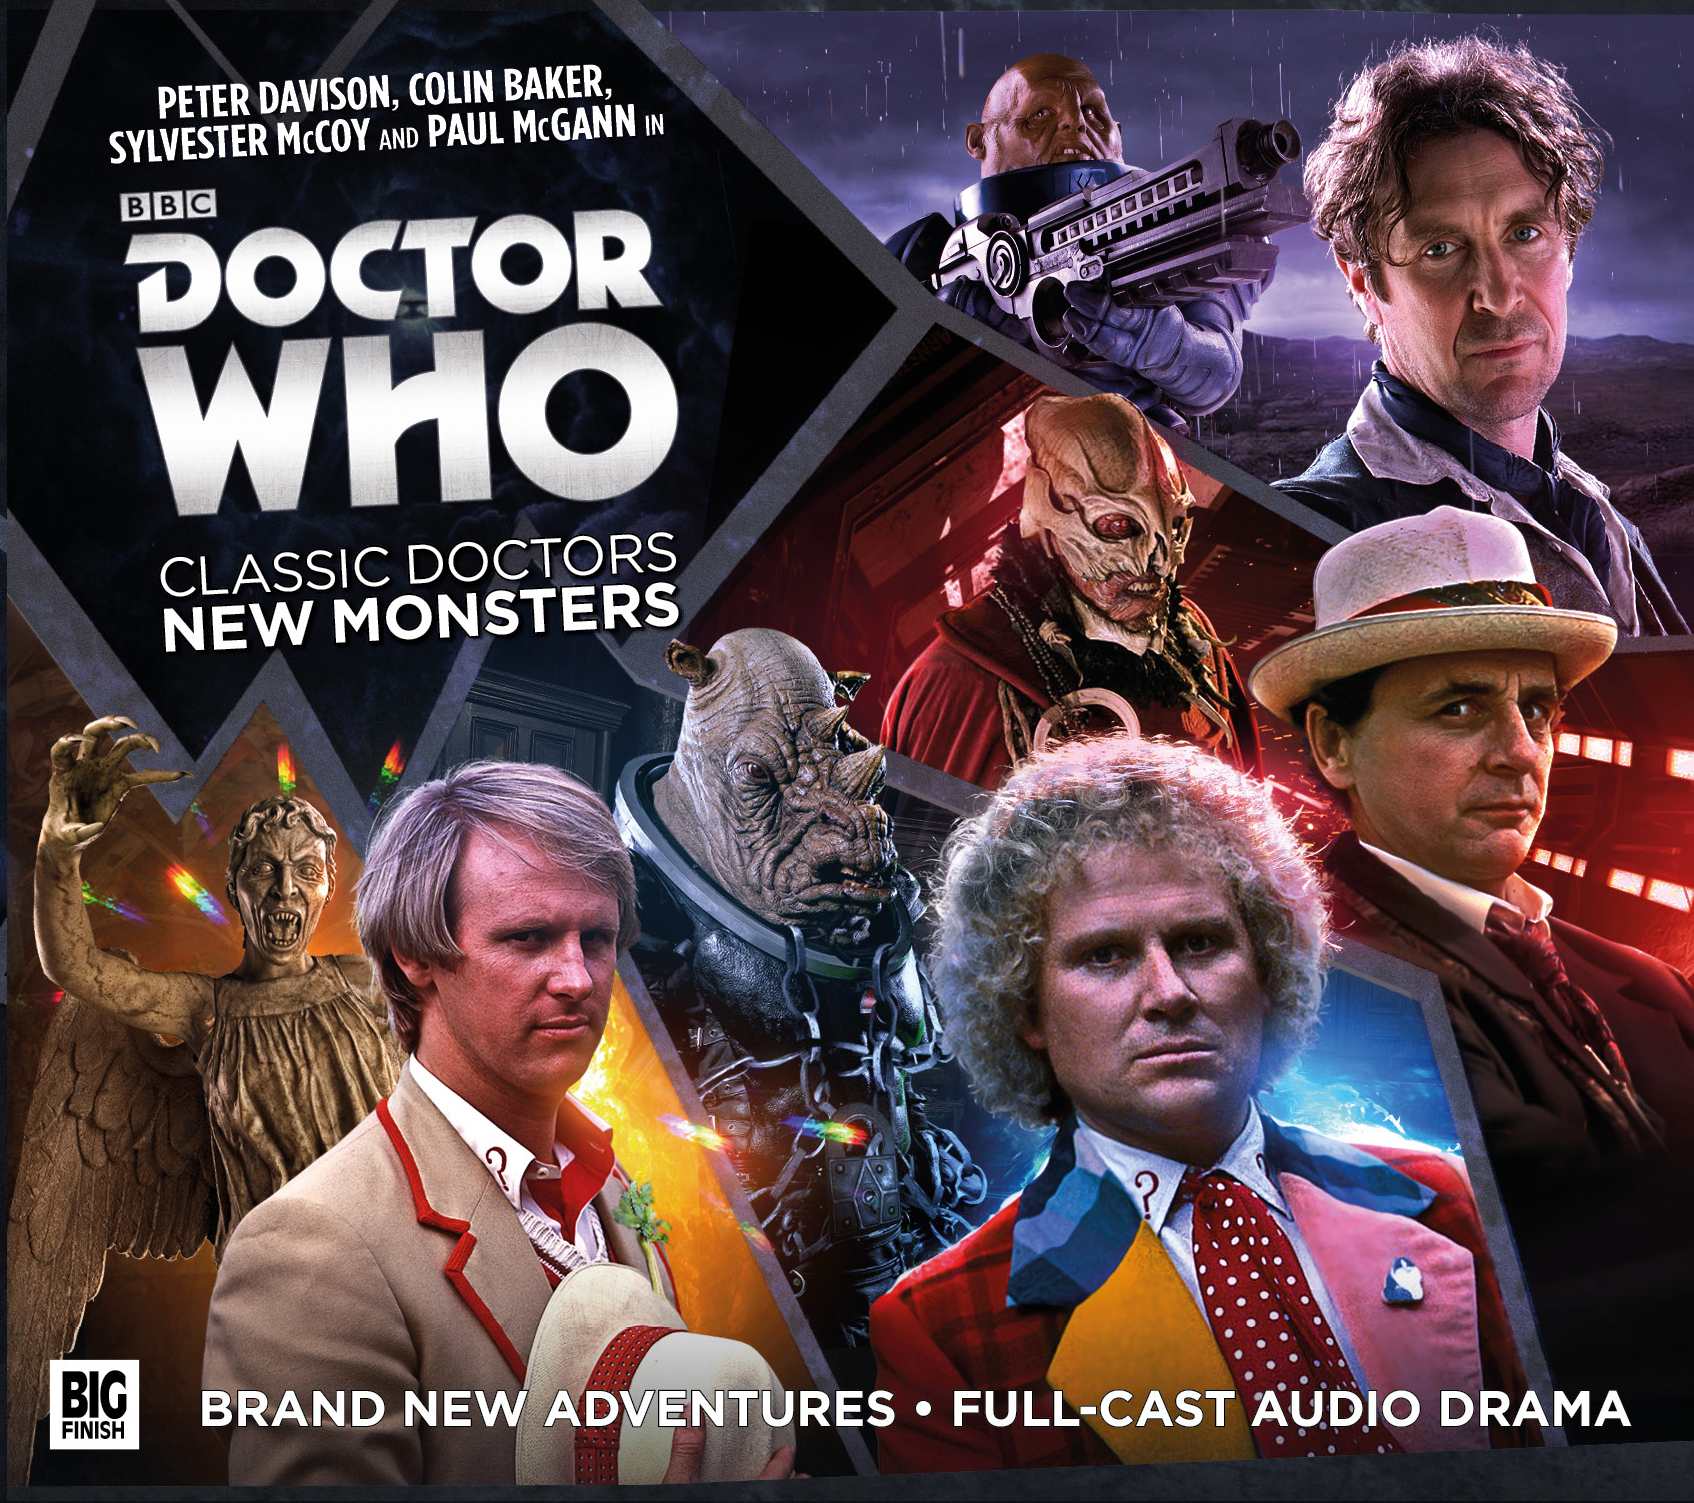 New Monsters (Credit: Big FInish)